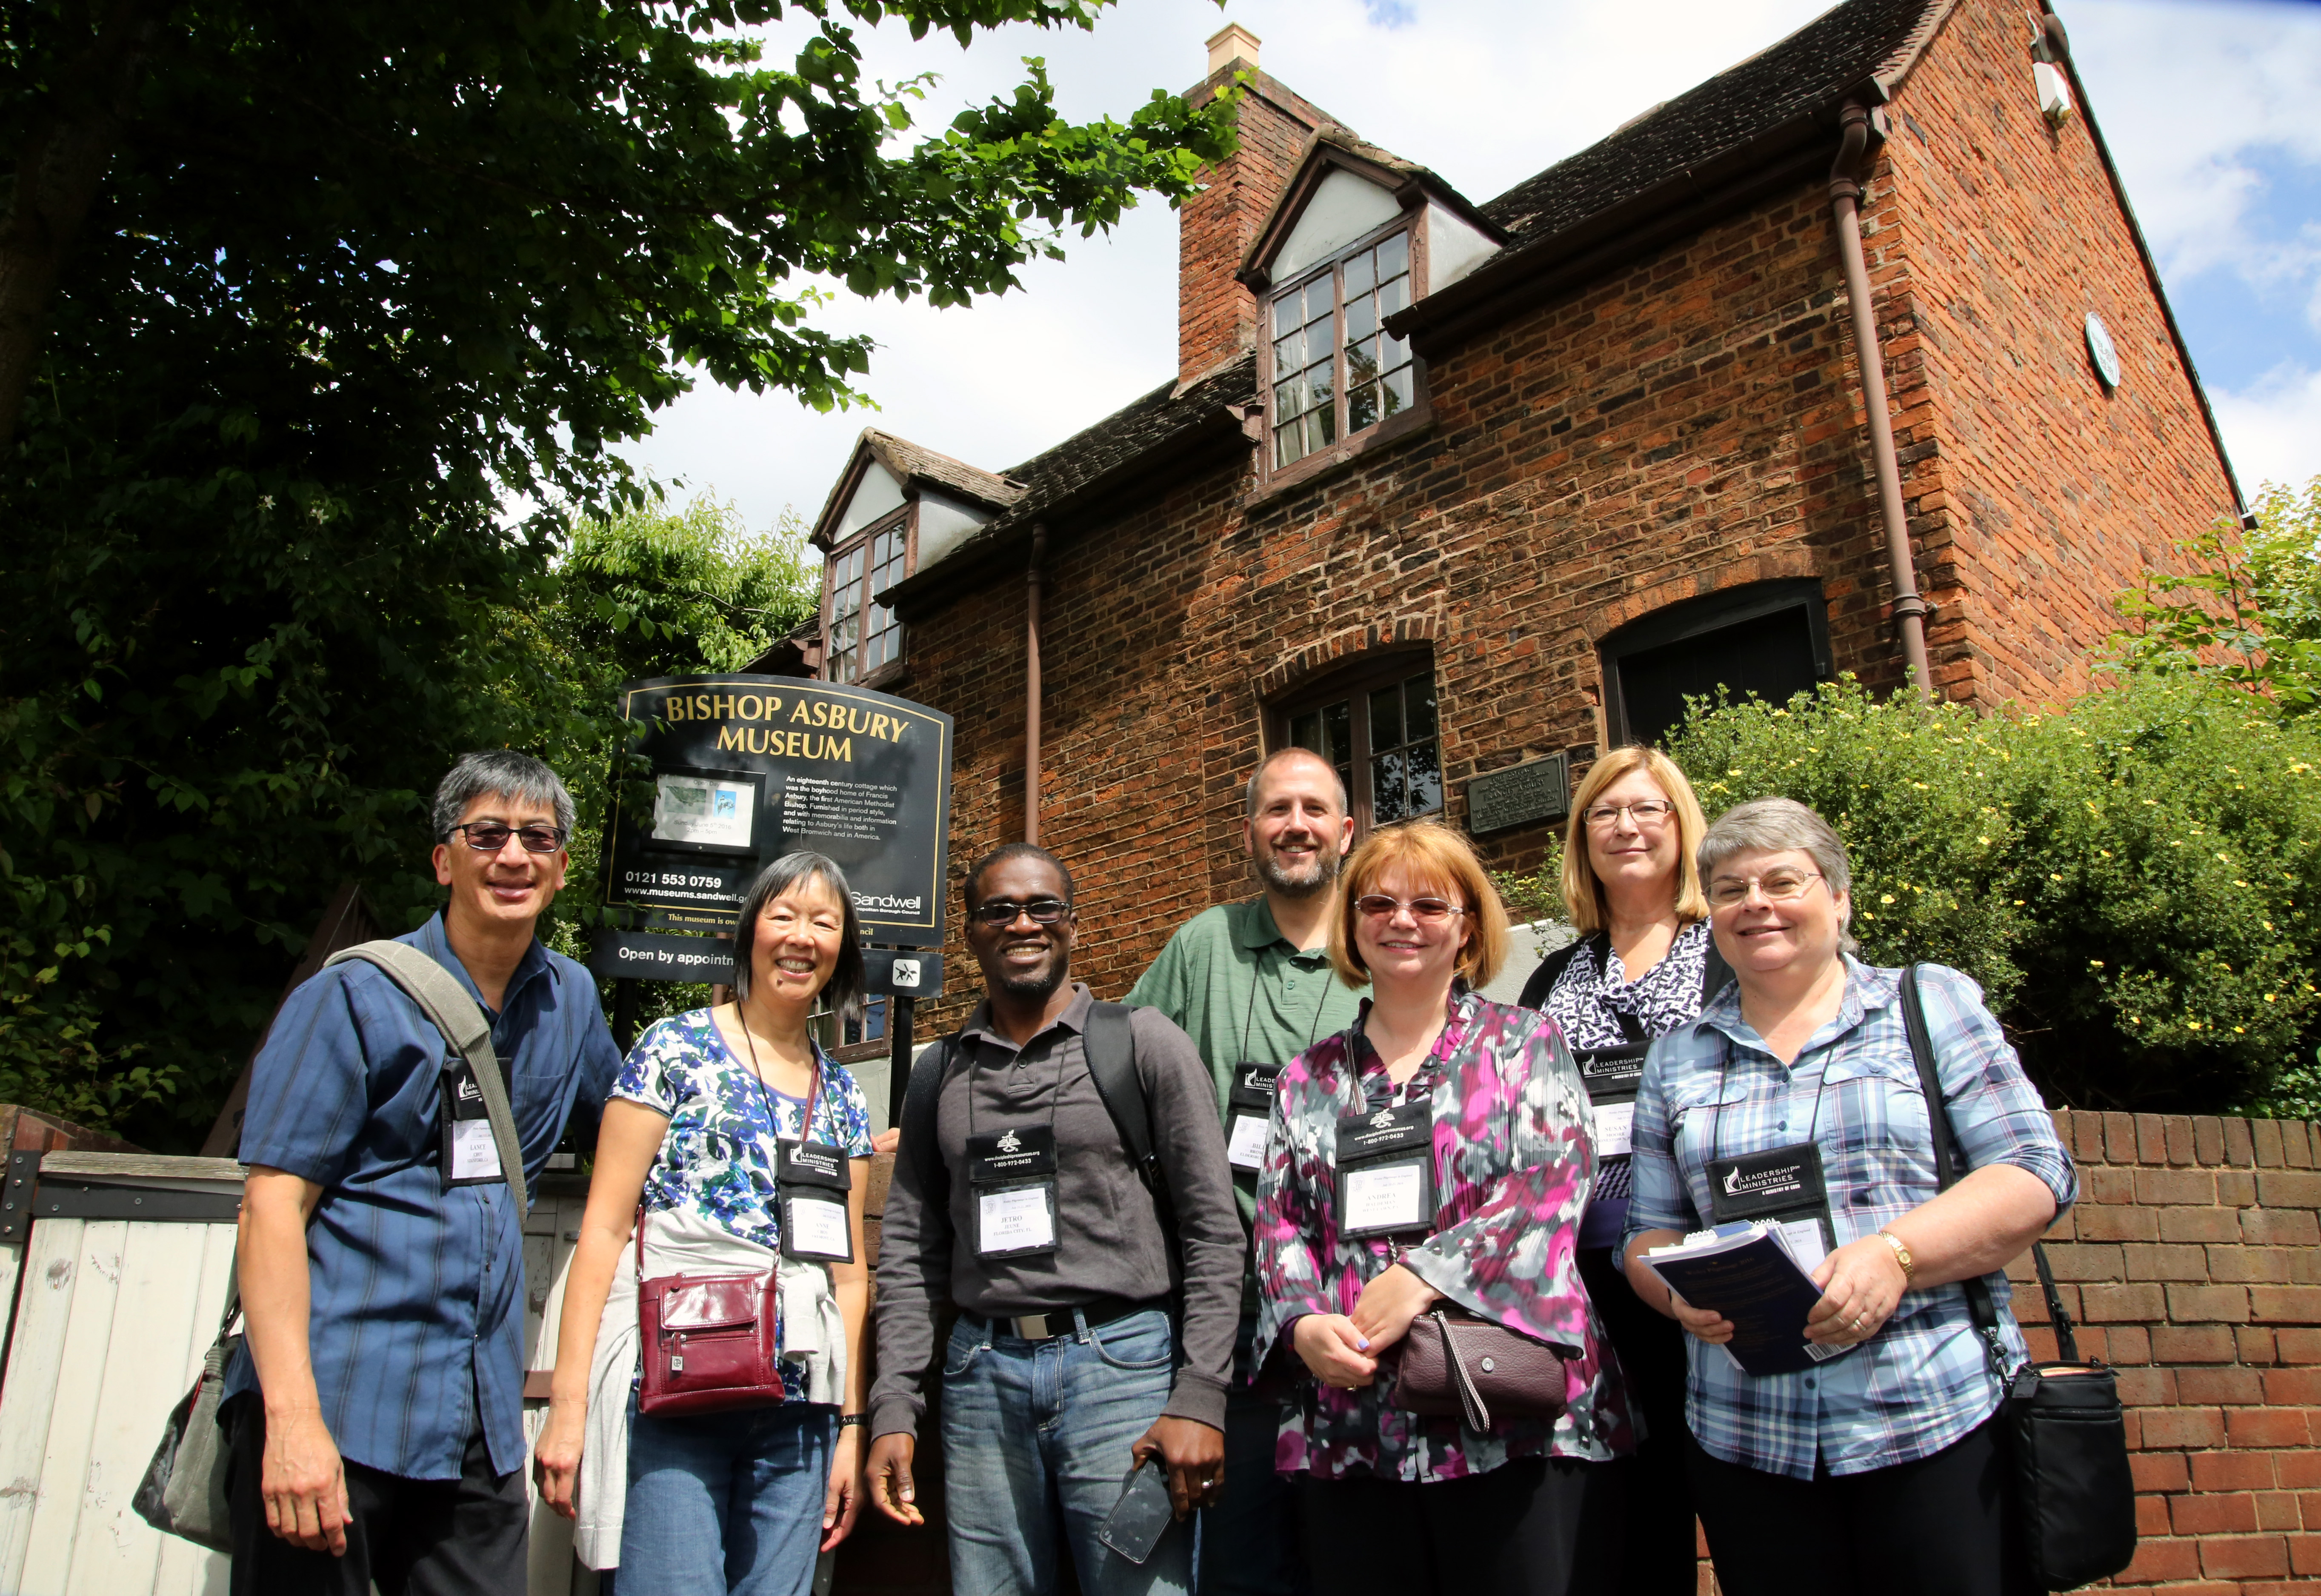 View the Wesley Pilgrimage slideshow.